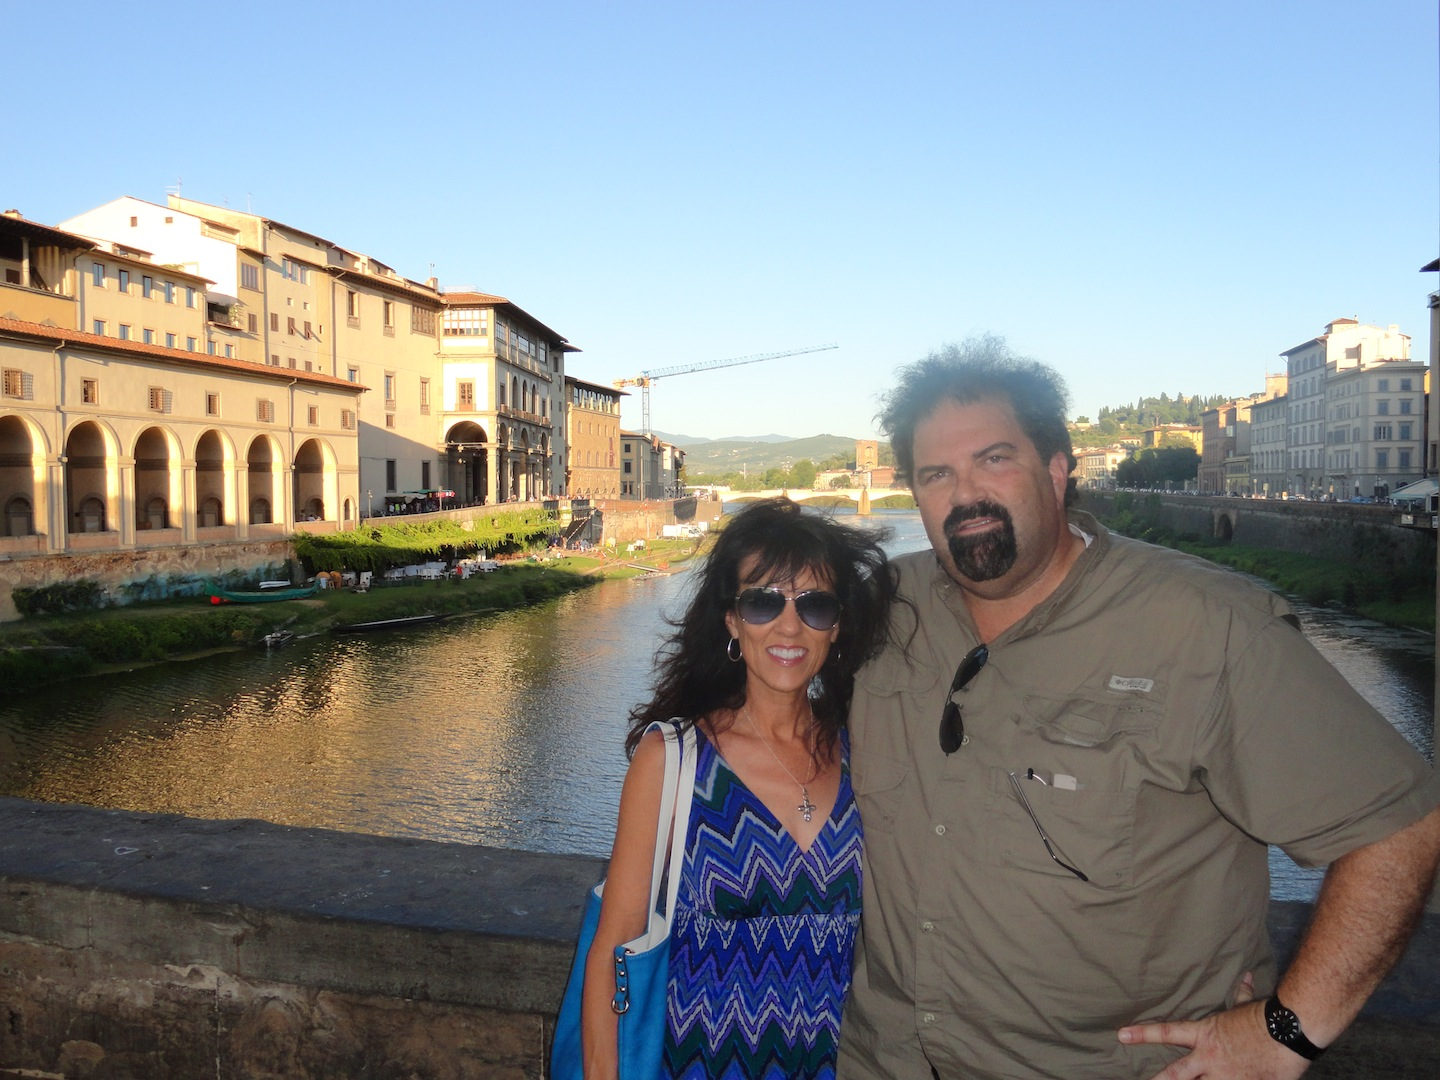 At the Ponte Vecchio bridge in Florence.  Yes, it was windy!  :)